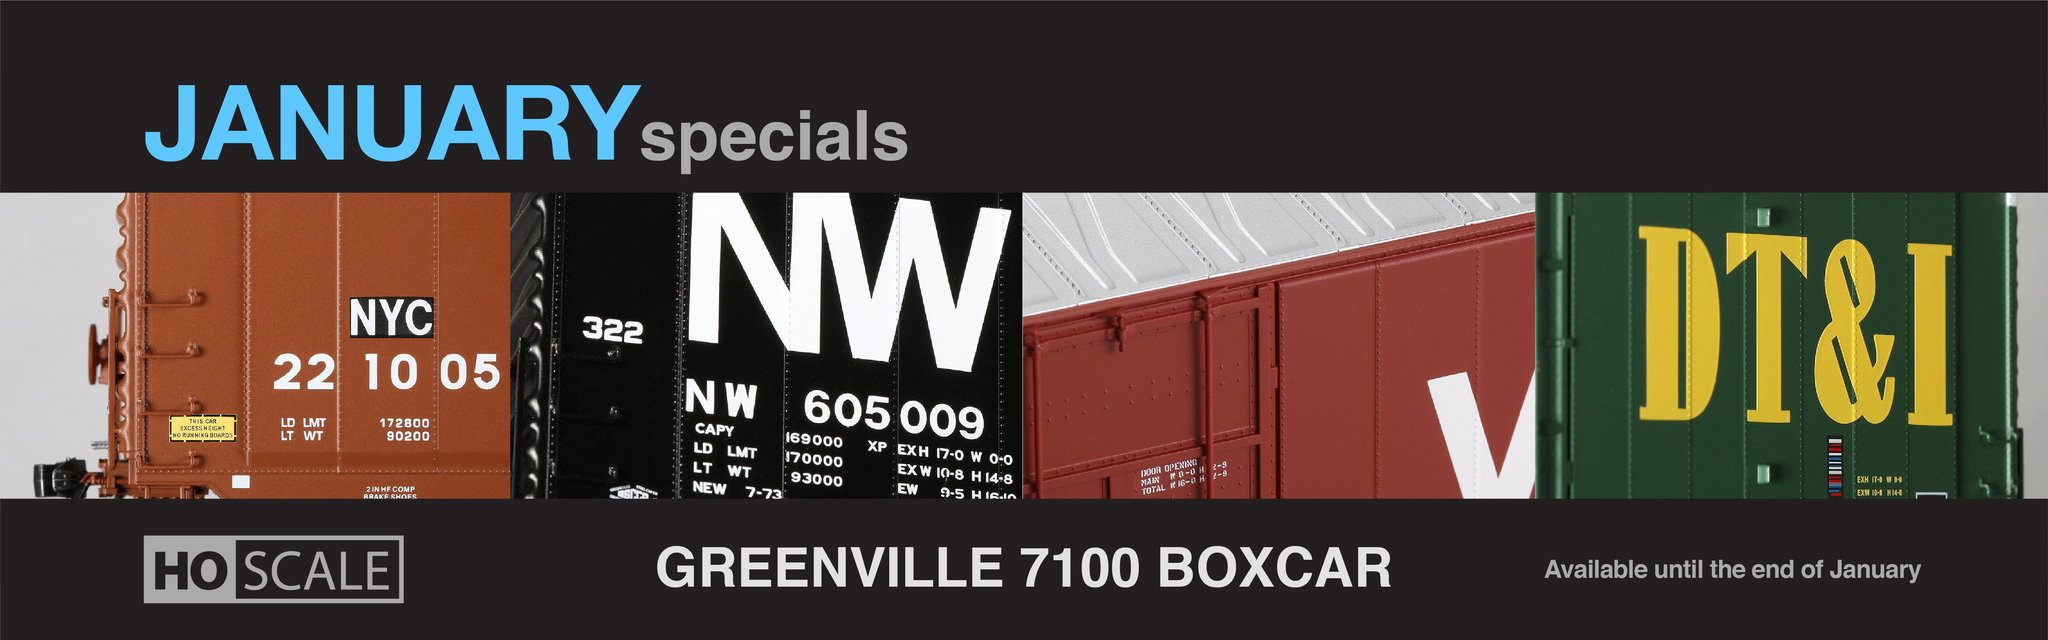 HO Scale February Specials